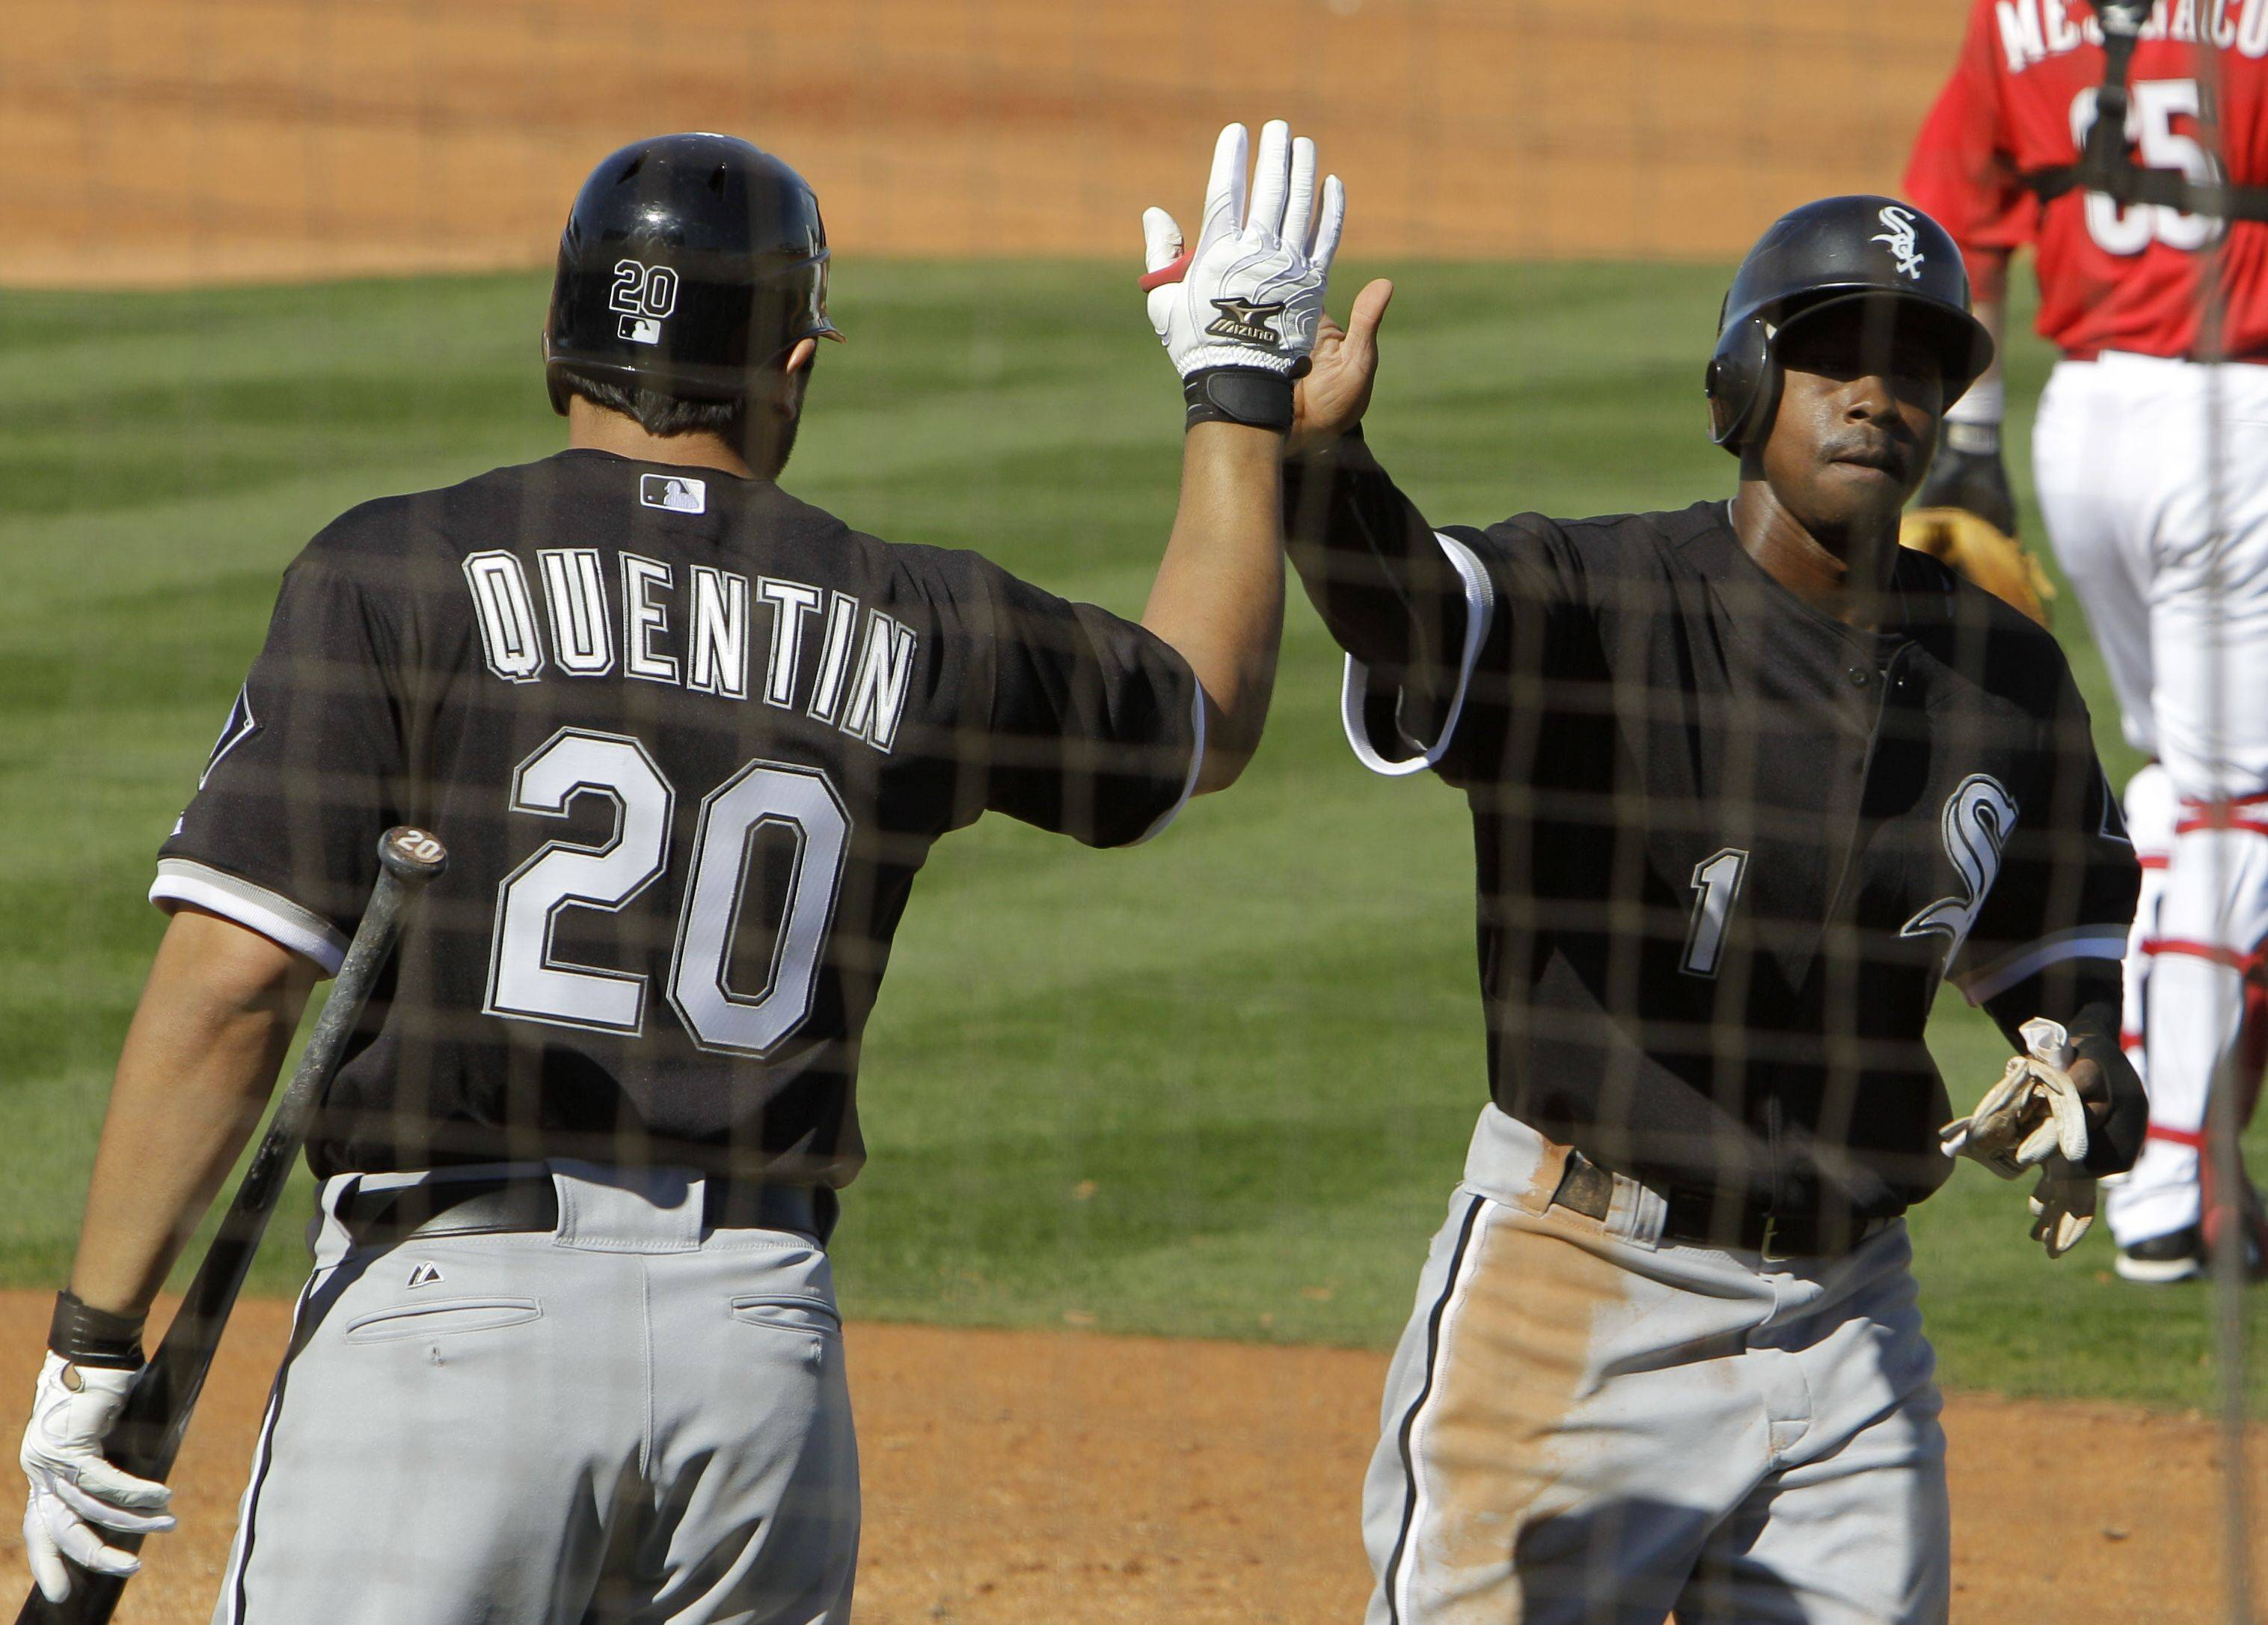 Juan Pierre is greeted by Carlos Quentin after scoring on a single by Paul Konerko in a Cactus League game last week in Glendale, Ariz.